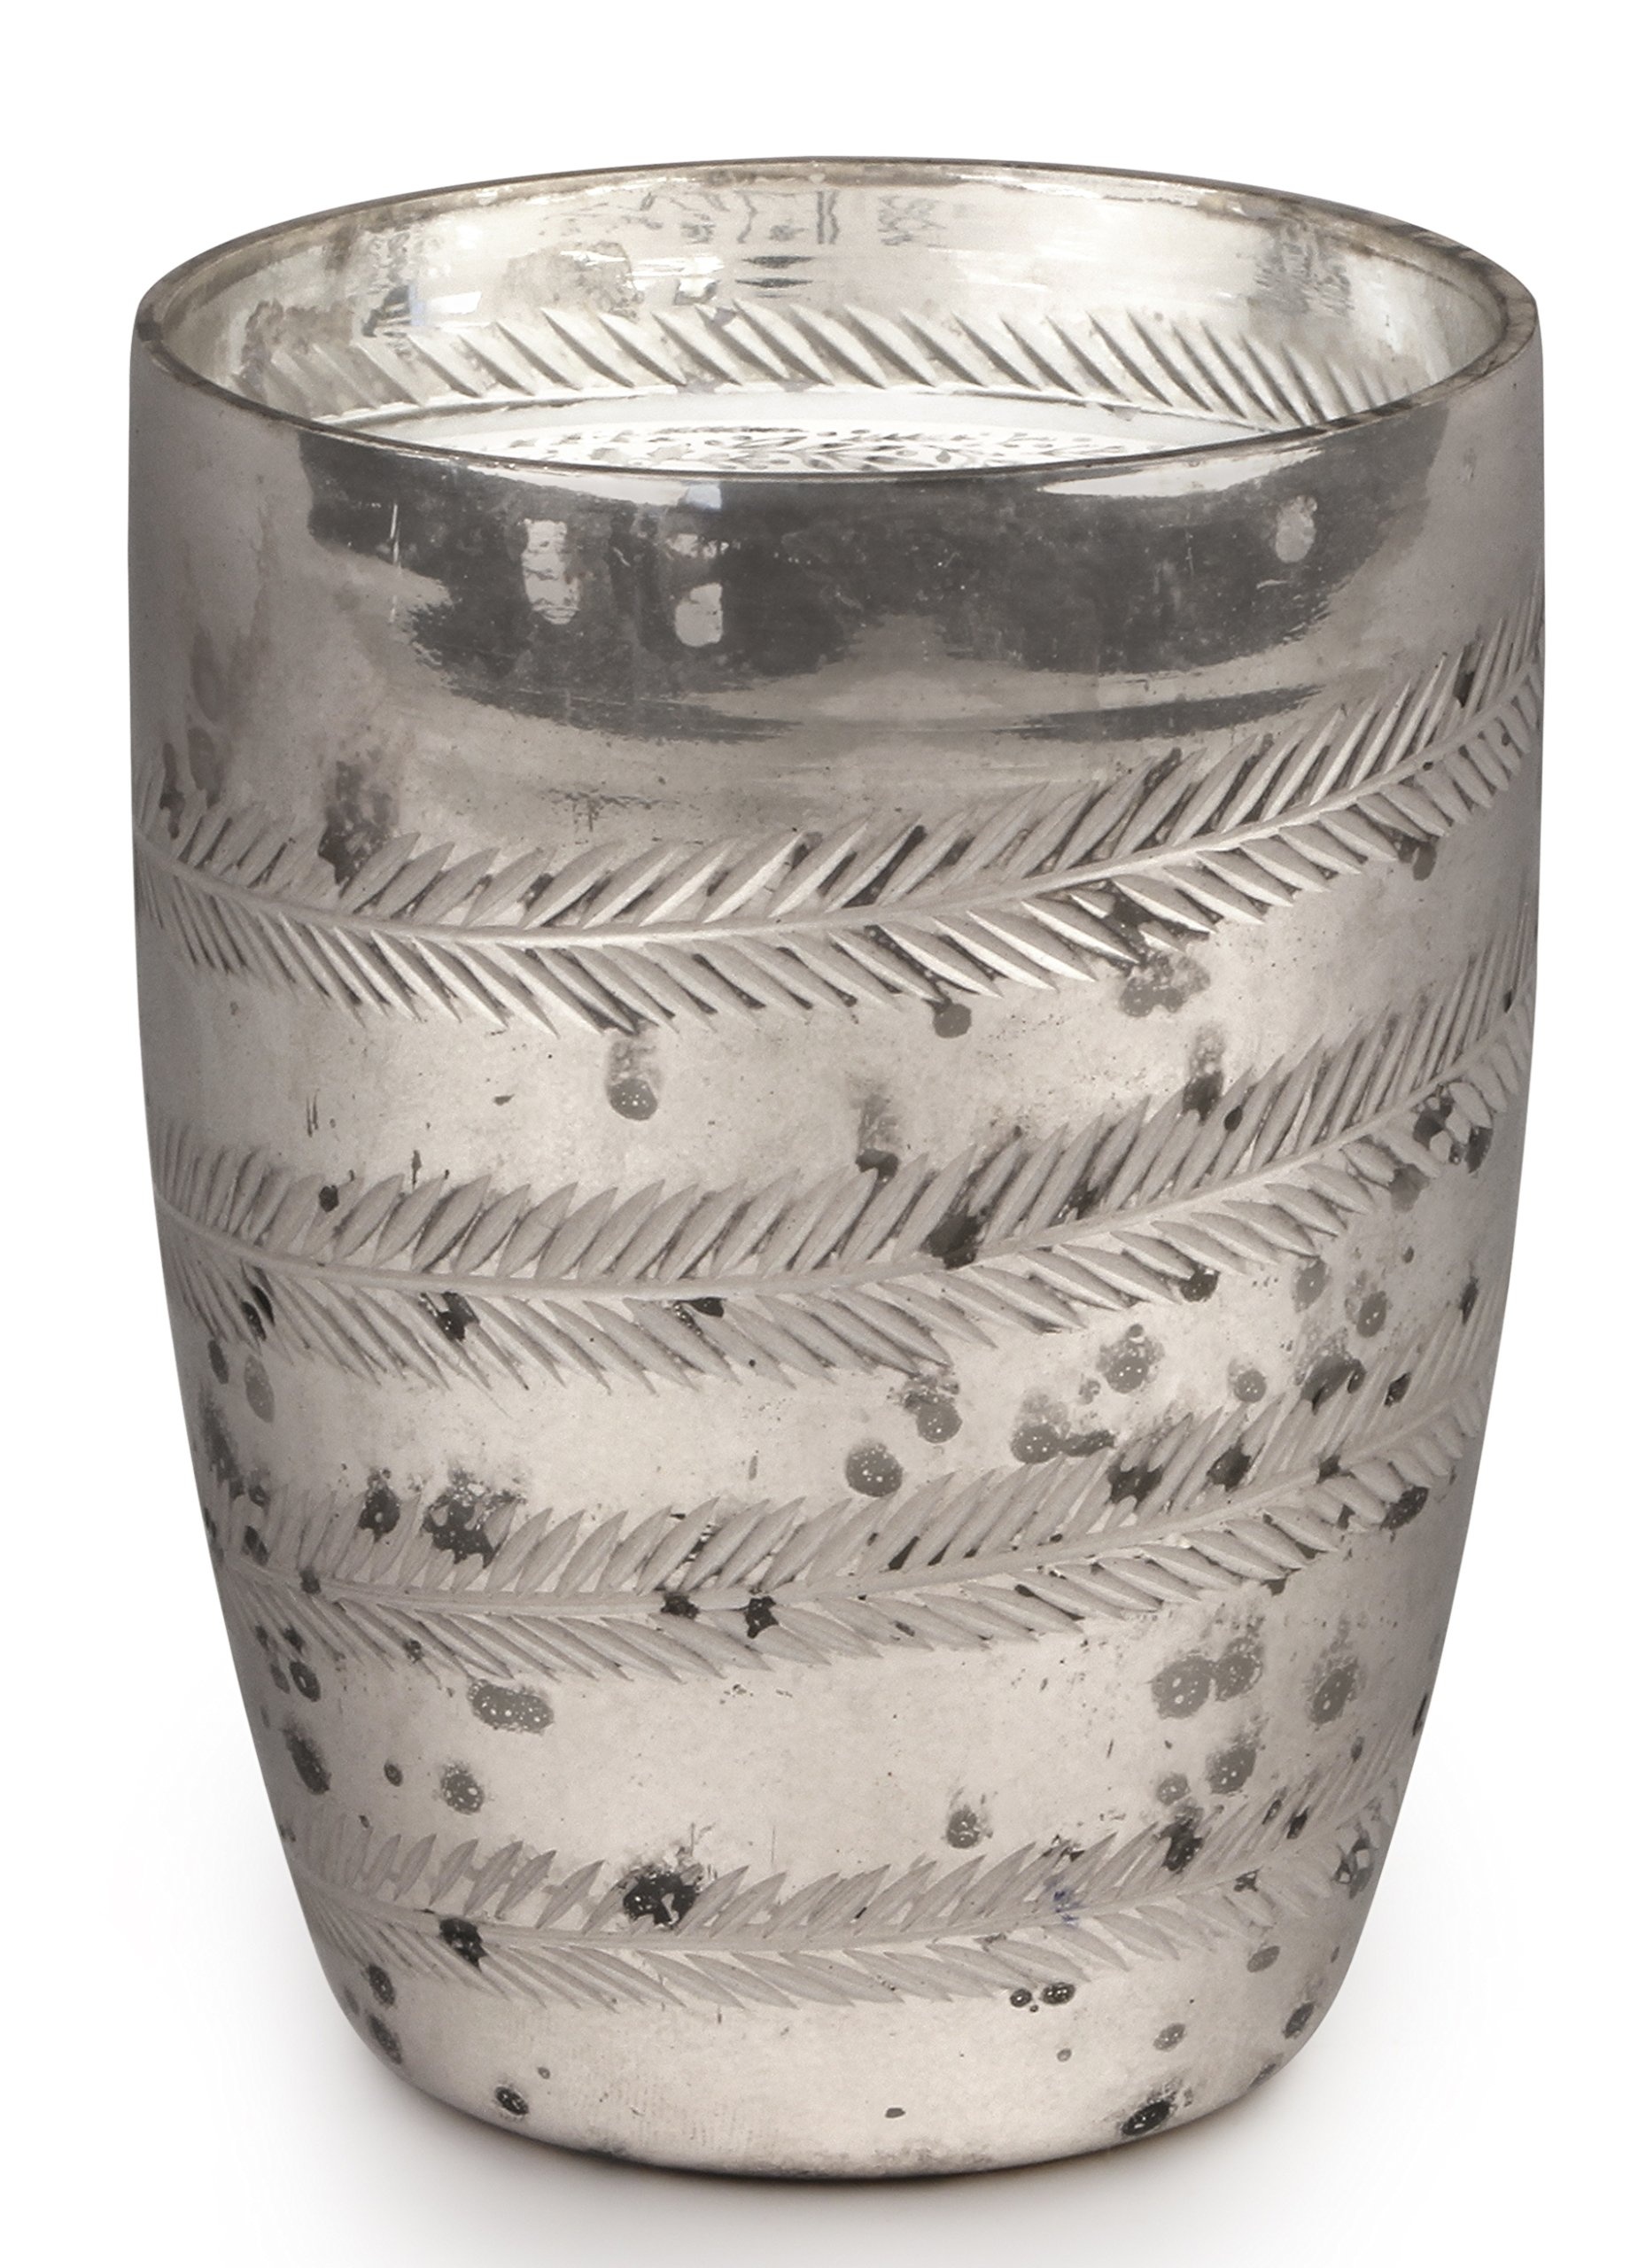 Paddywax Soy Wax Candle in Etched Silver Mercury Glass, 10-Ounce, Peppermint & Vanilla